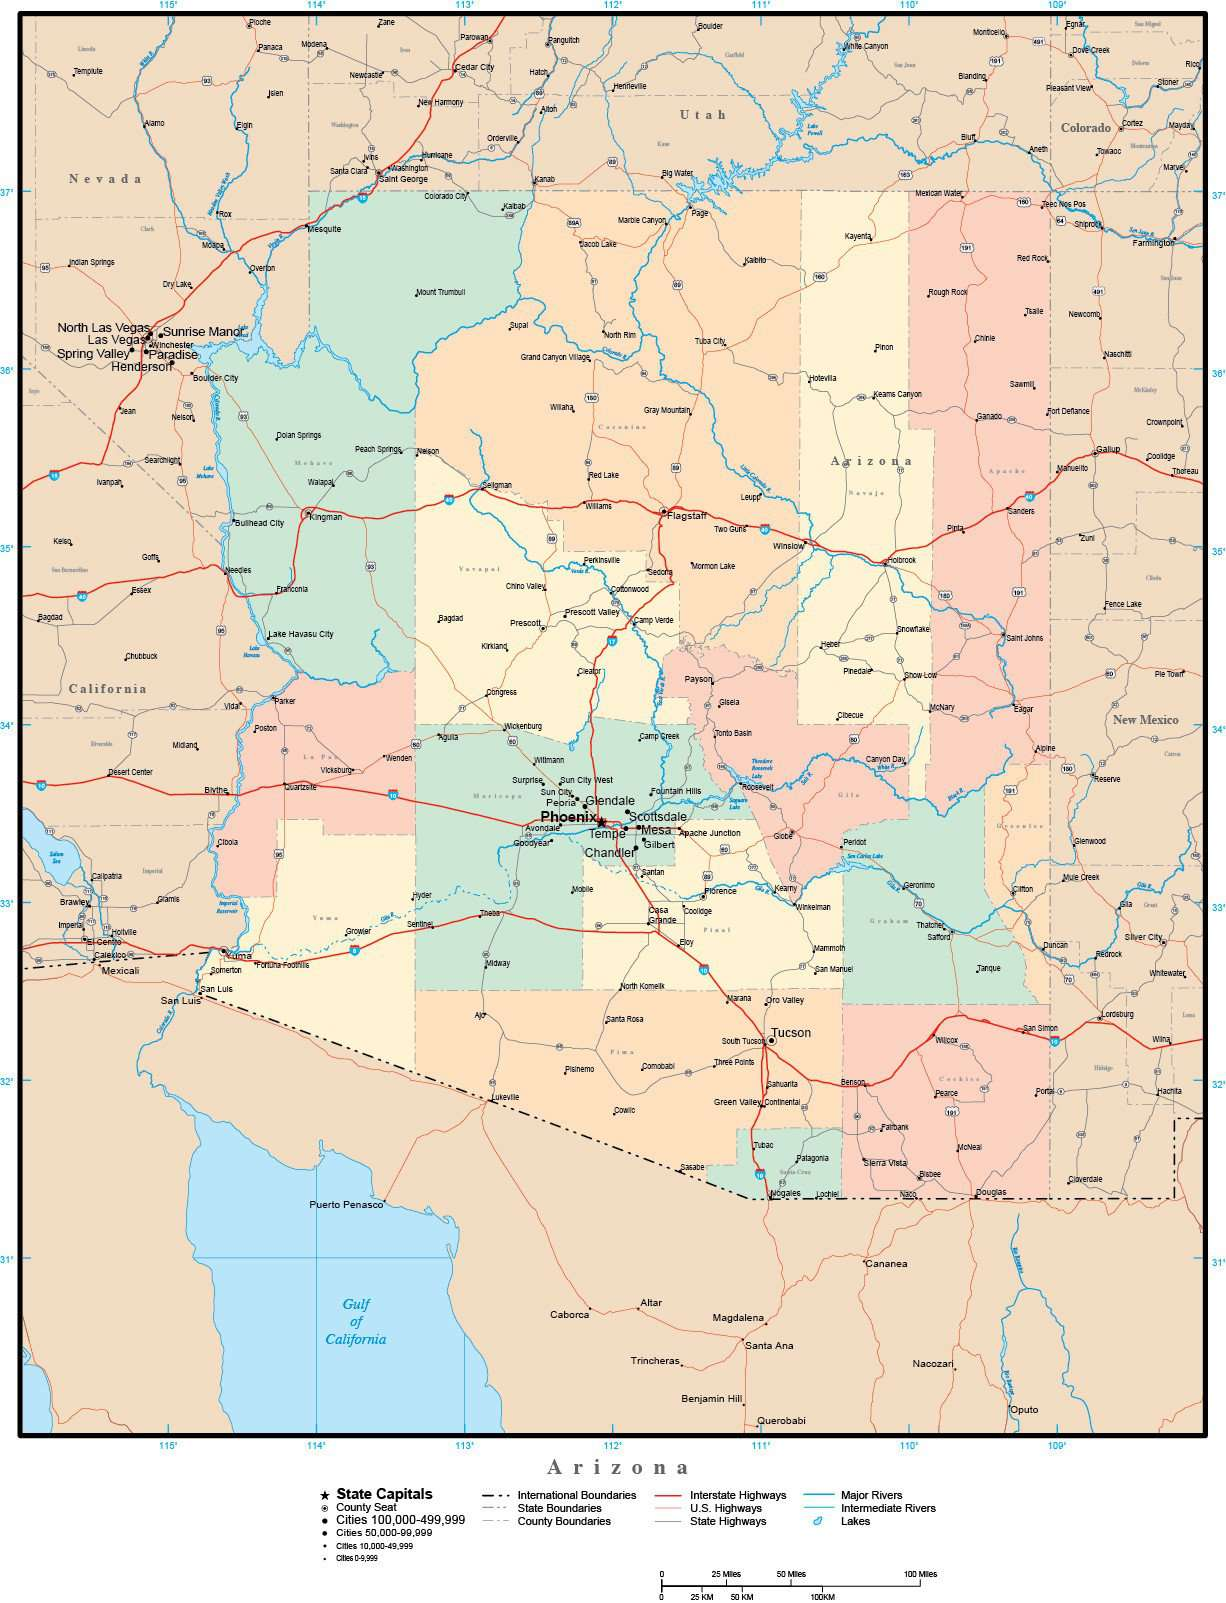 Map Of Arizona With Major Cities.Arizona Adobe Illustrator Map With Counties Cities County Seats